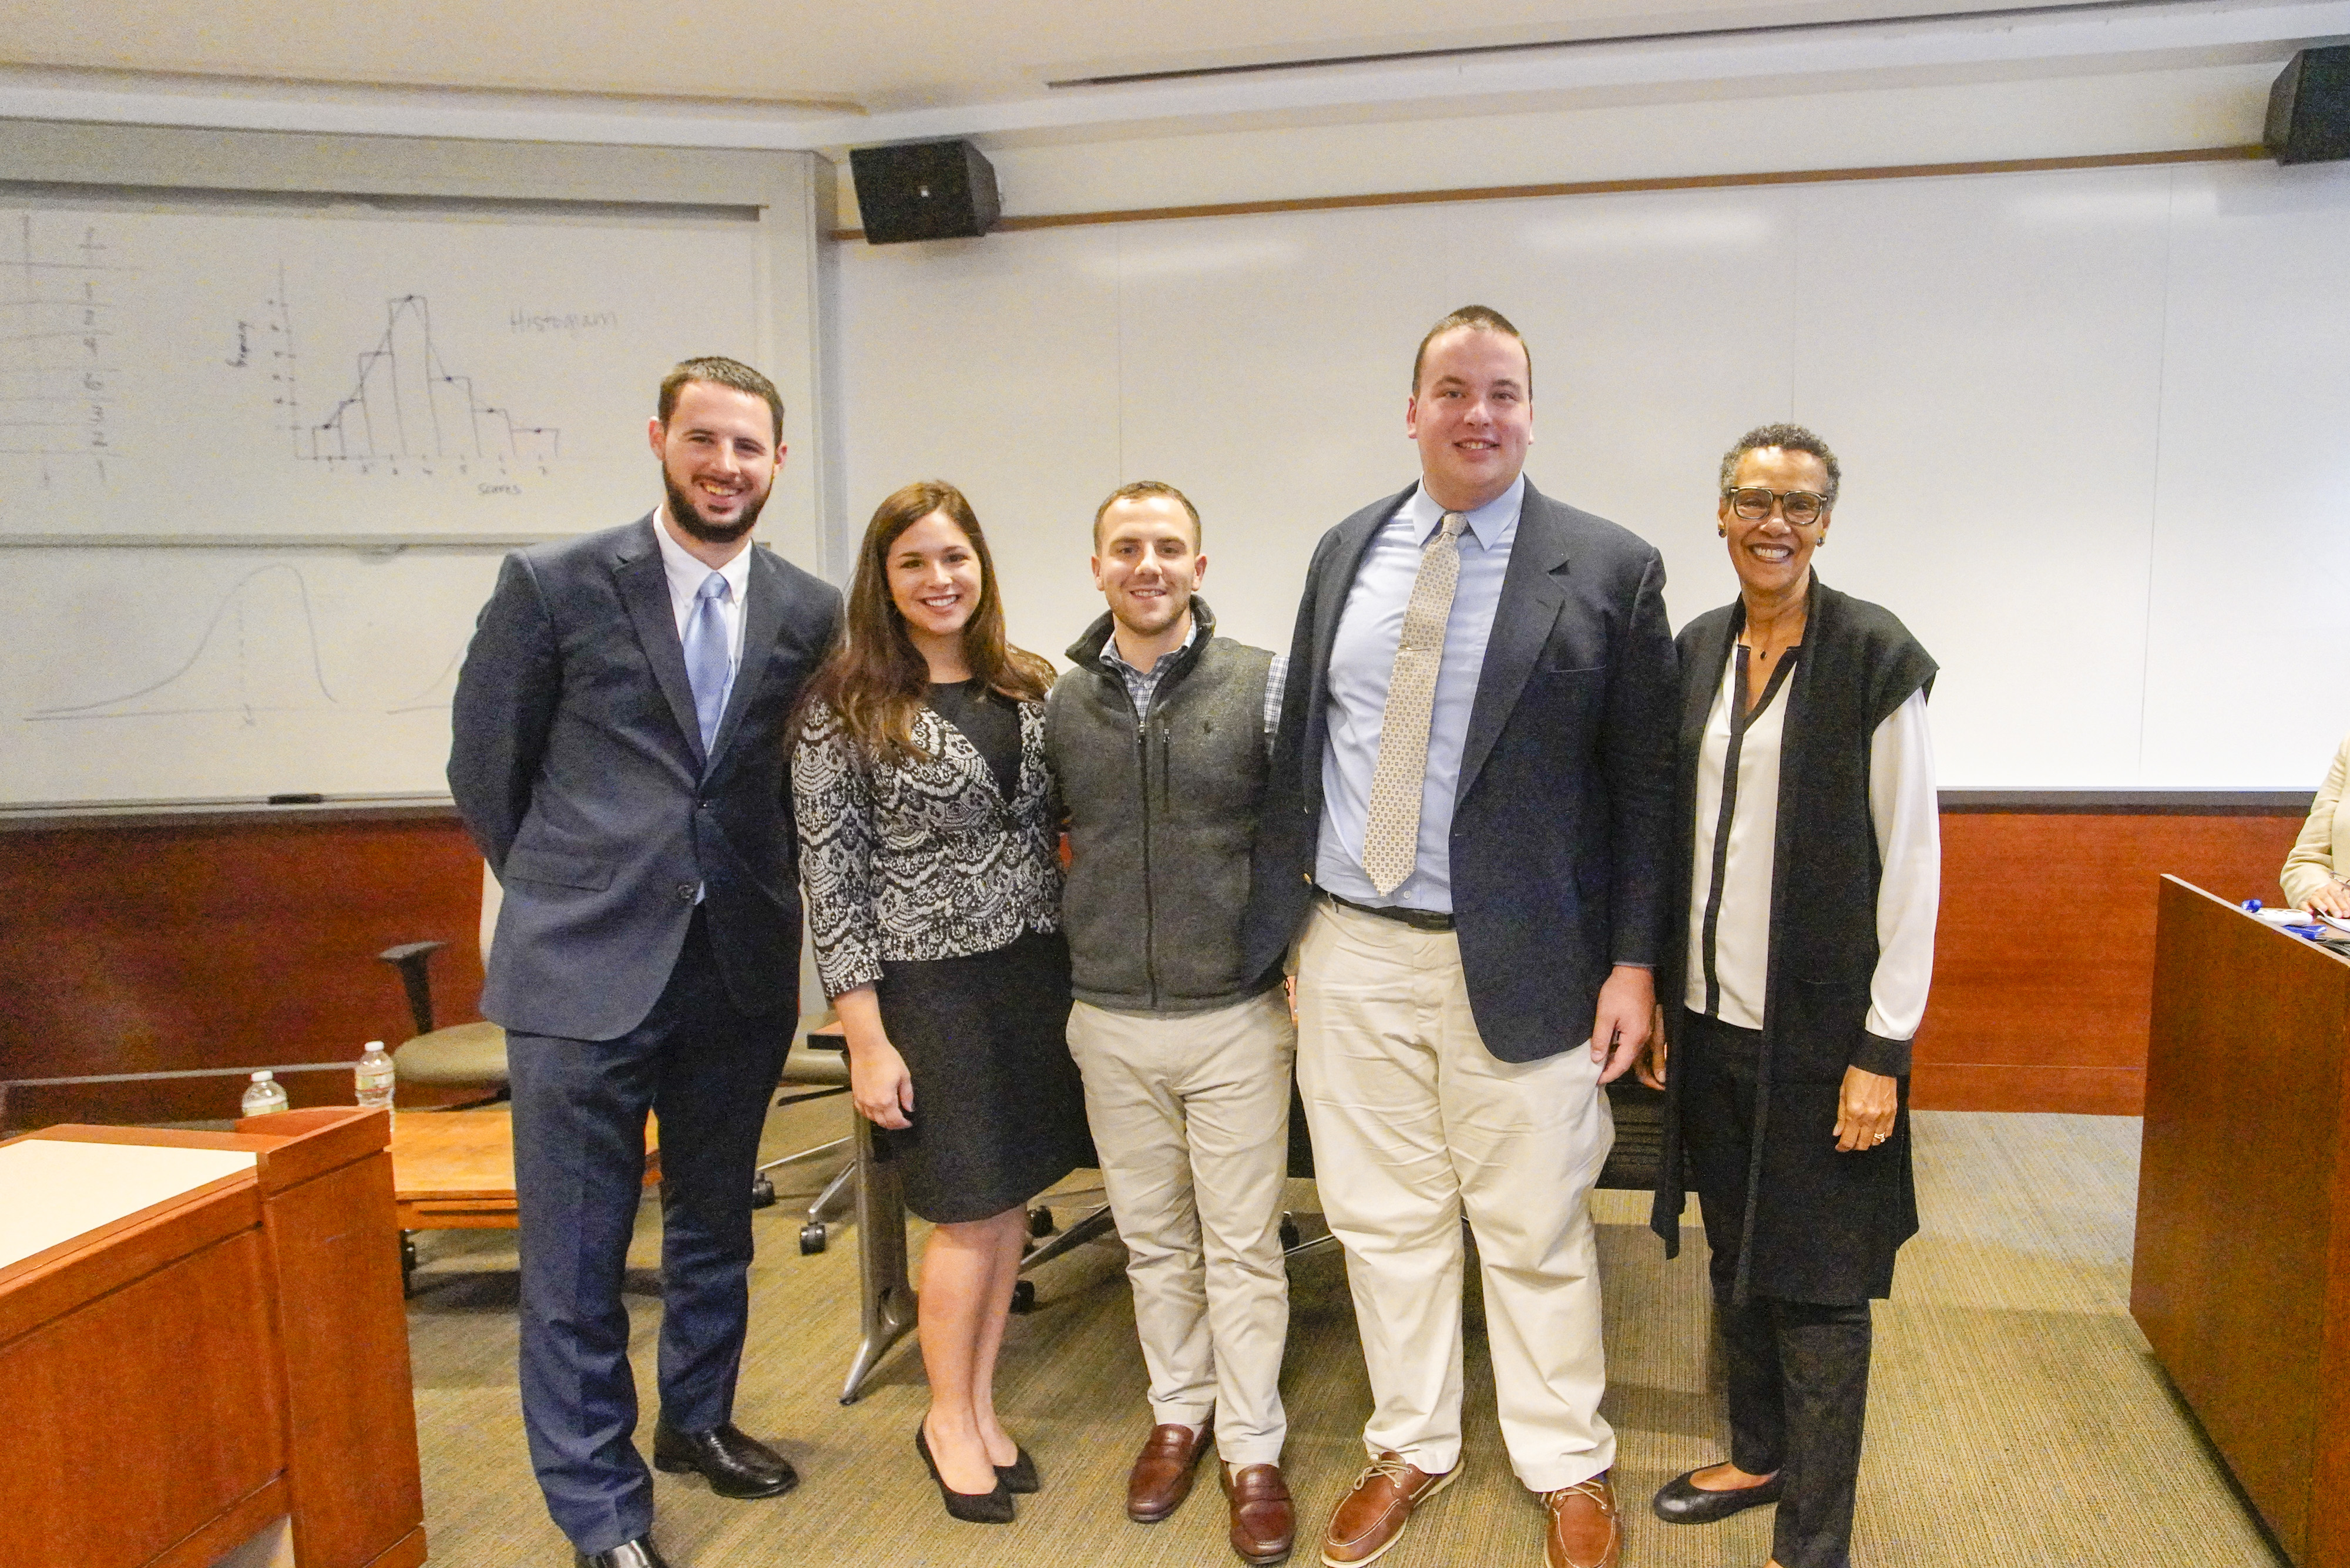 Emmanuel College law school alumni panel members